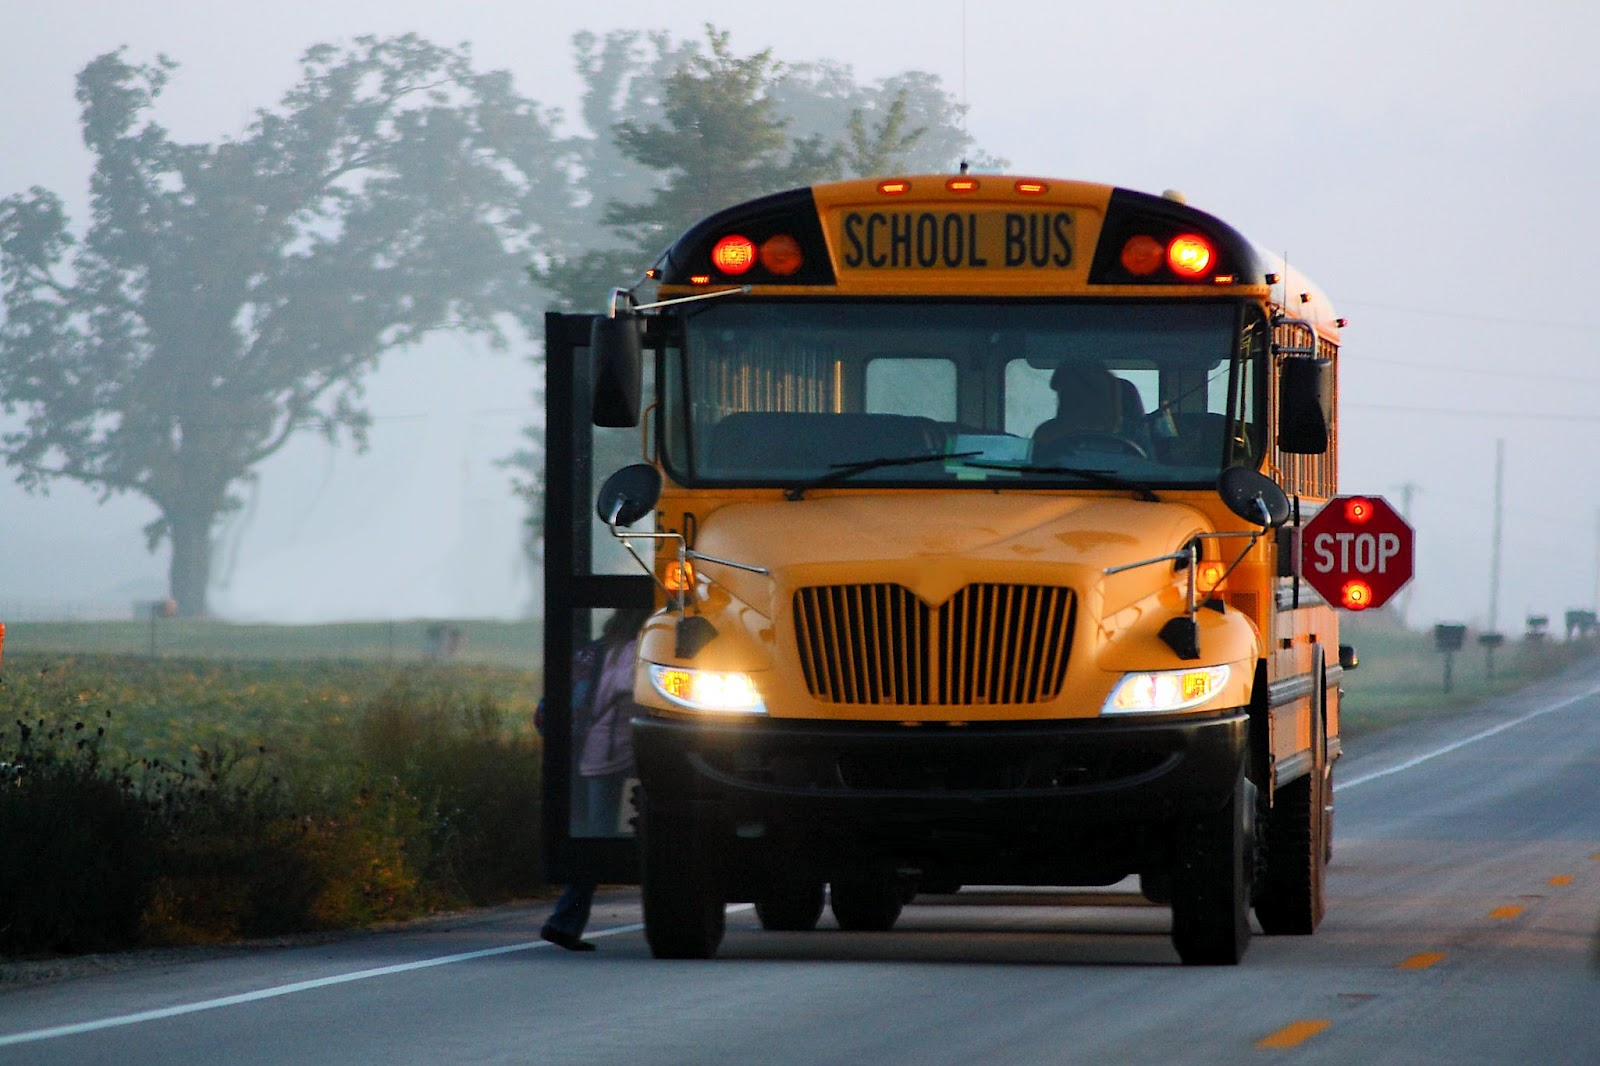 http://4.bp.blogspot.com/-FBTwoqEvrZA/UB1KGUobbcI/AAAAAAAAAkg/ntBJVvr_LS8/s1600/school-bus-picking-up-kids-.jpg